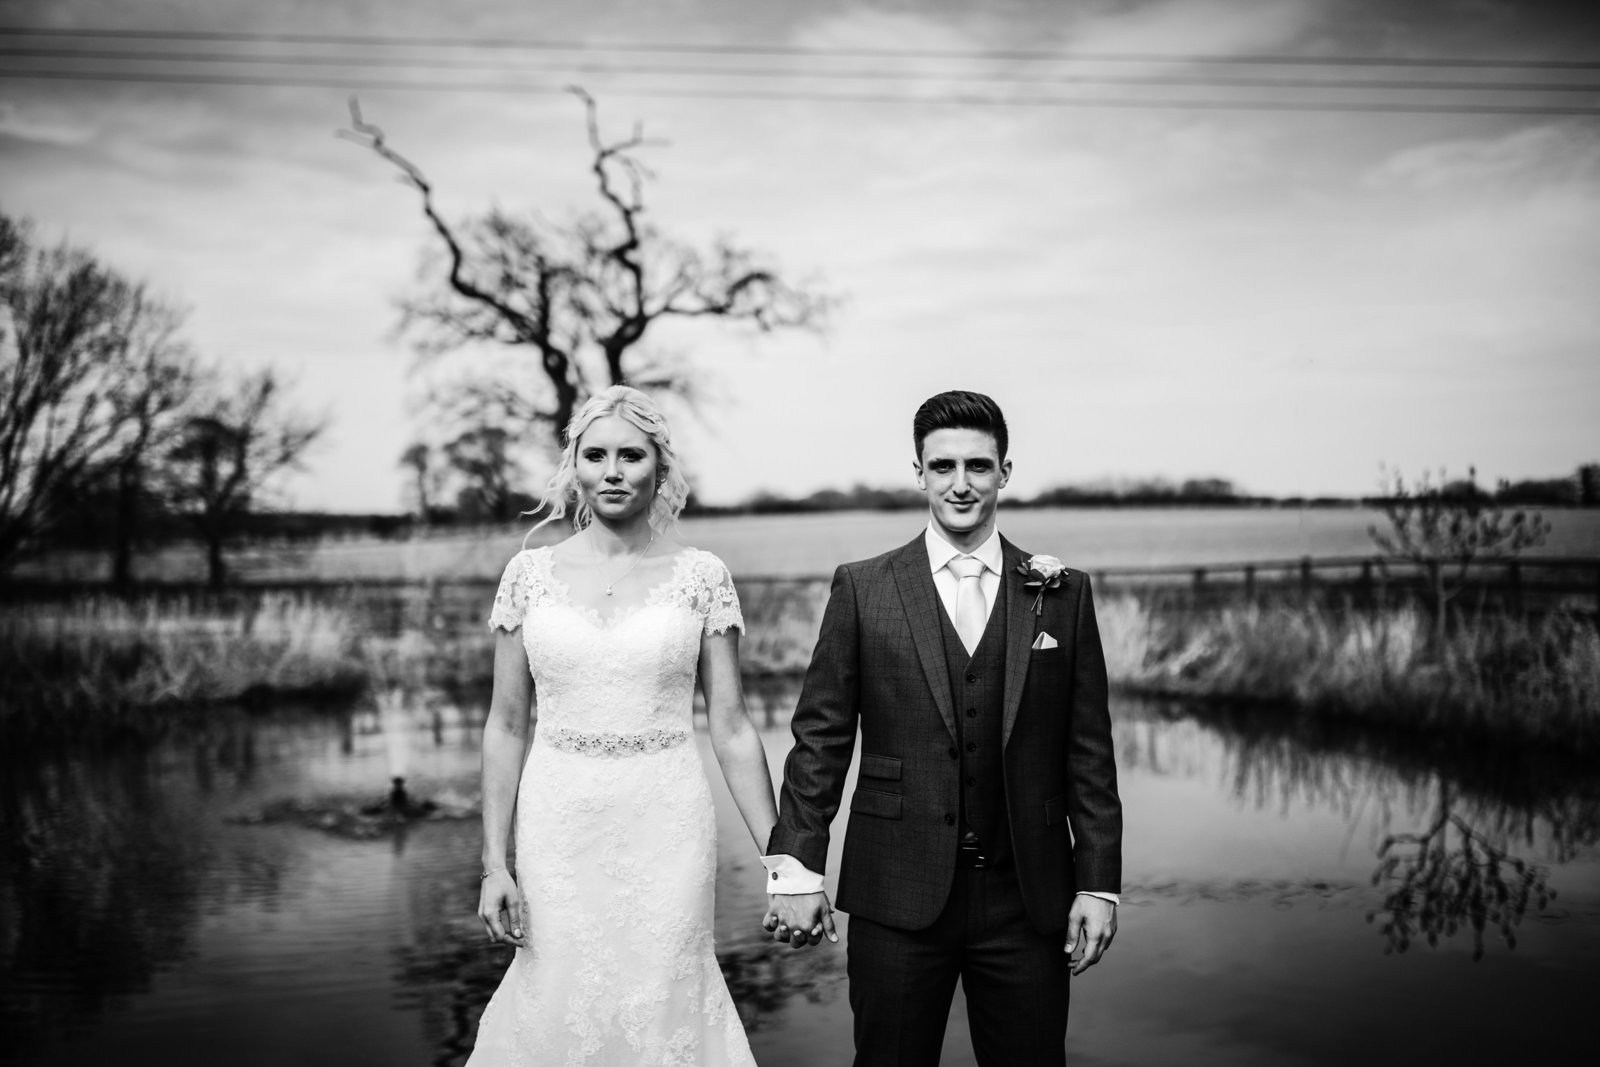 A black and white portrait of a smiling Bride and groom holding hands in front of a pond at a Norfolk barn wedding venue.